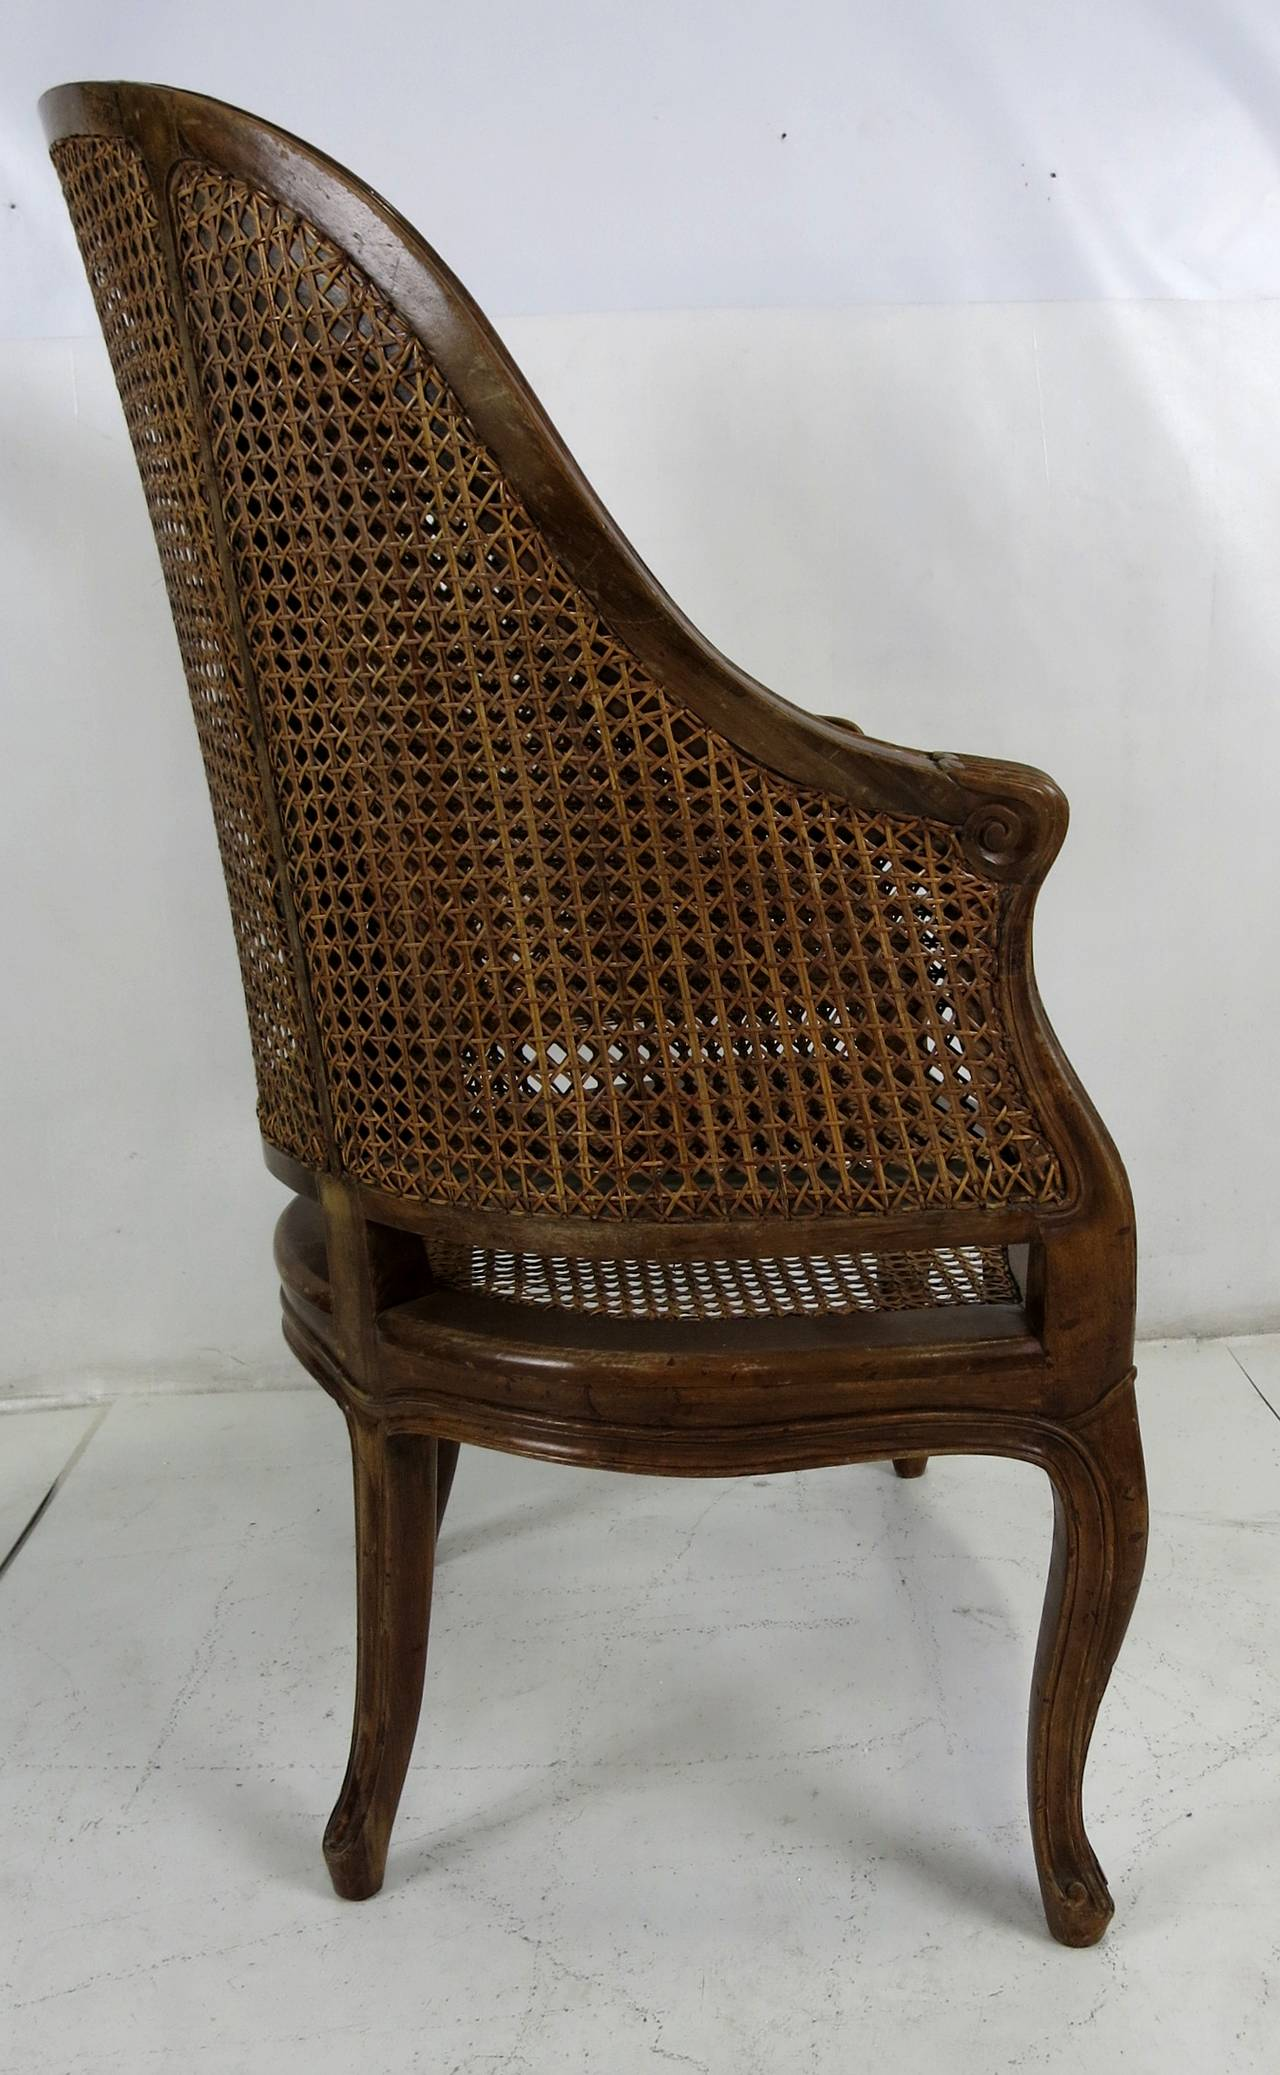 Large-Scale Italian Louis XV Style Barrel Chair In Excellent Condition For Sale In San Leandro, CA